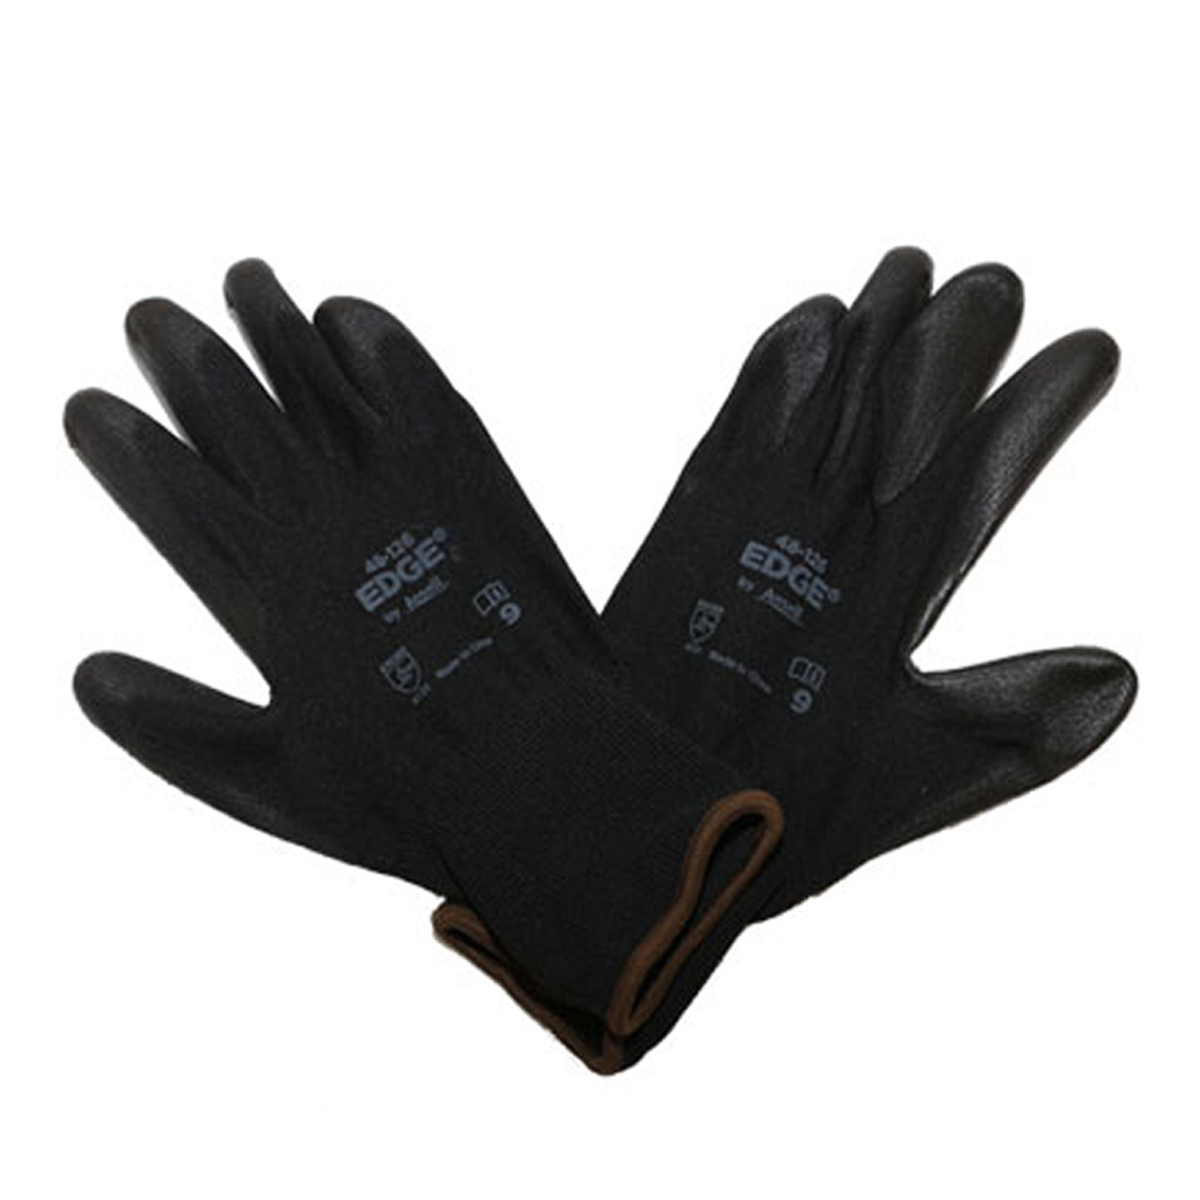 Suntask_Ansell_EDGE®_48-126_PU_Coated_Work_Gloves_Black_Color_Dublin_12.jpg